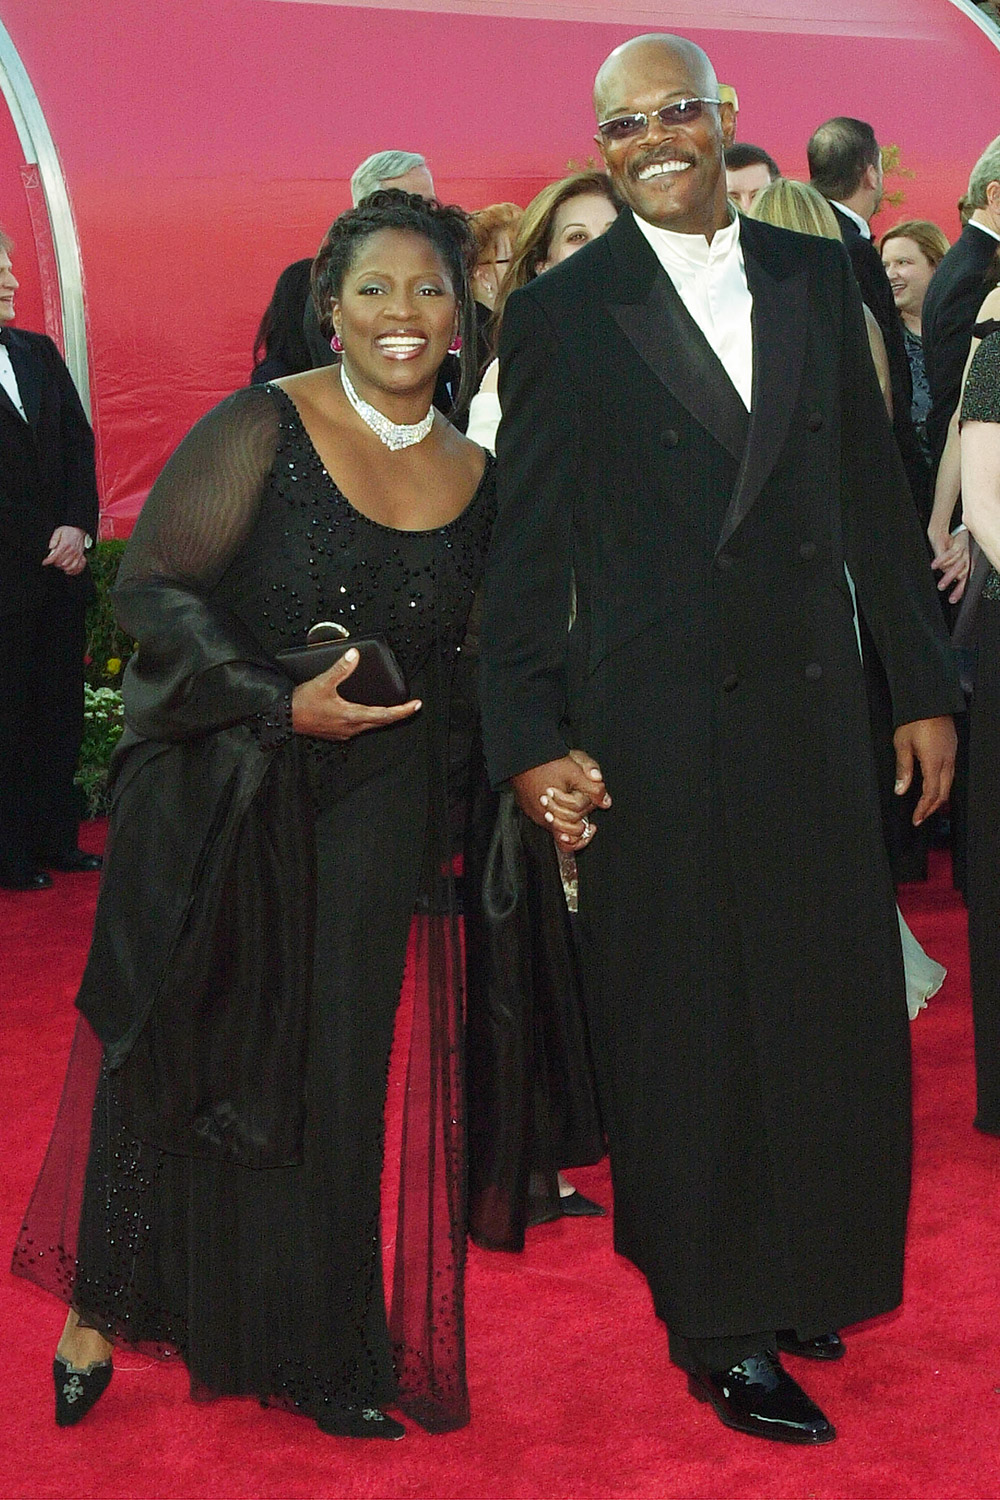 Samuel L. Jackson and his wife LaTanya Richardson at the 73rd Annual Academy Awards